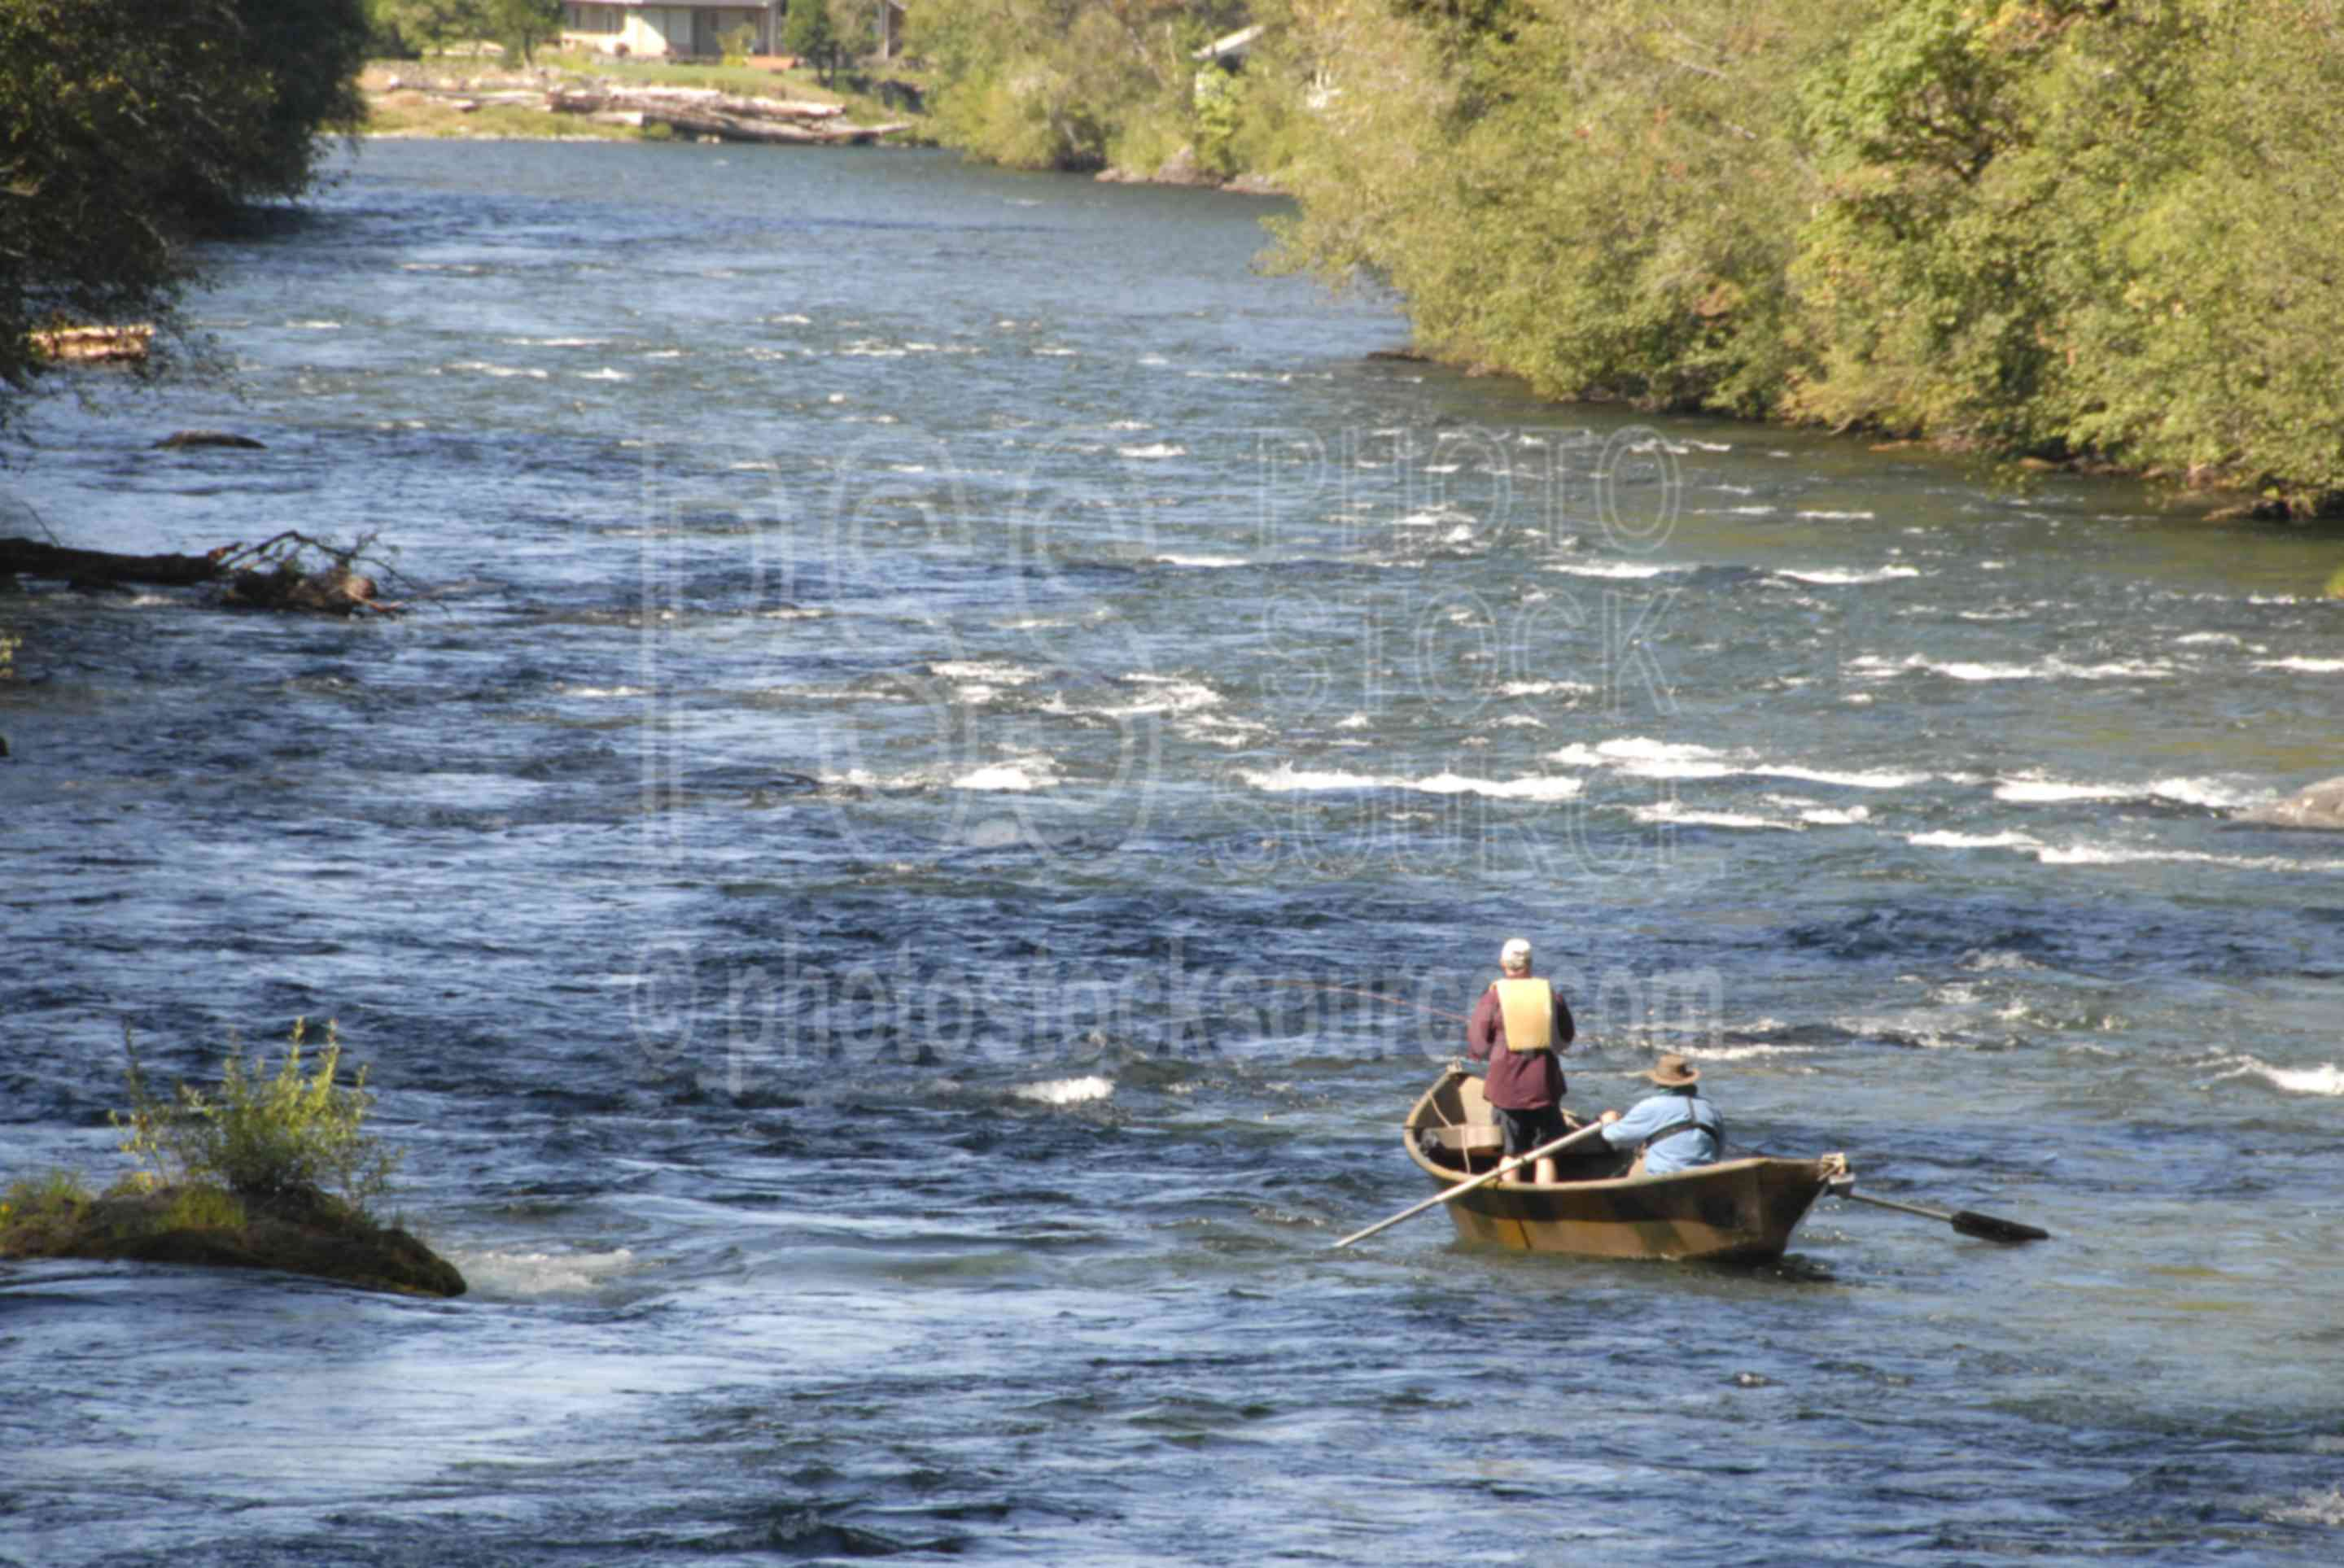 McKenzie Riverboat,fishing,fishermen,boat,river boat,mckenzie river boat,river,recreation,drift boat,row boat,boats